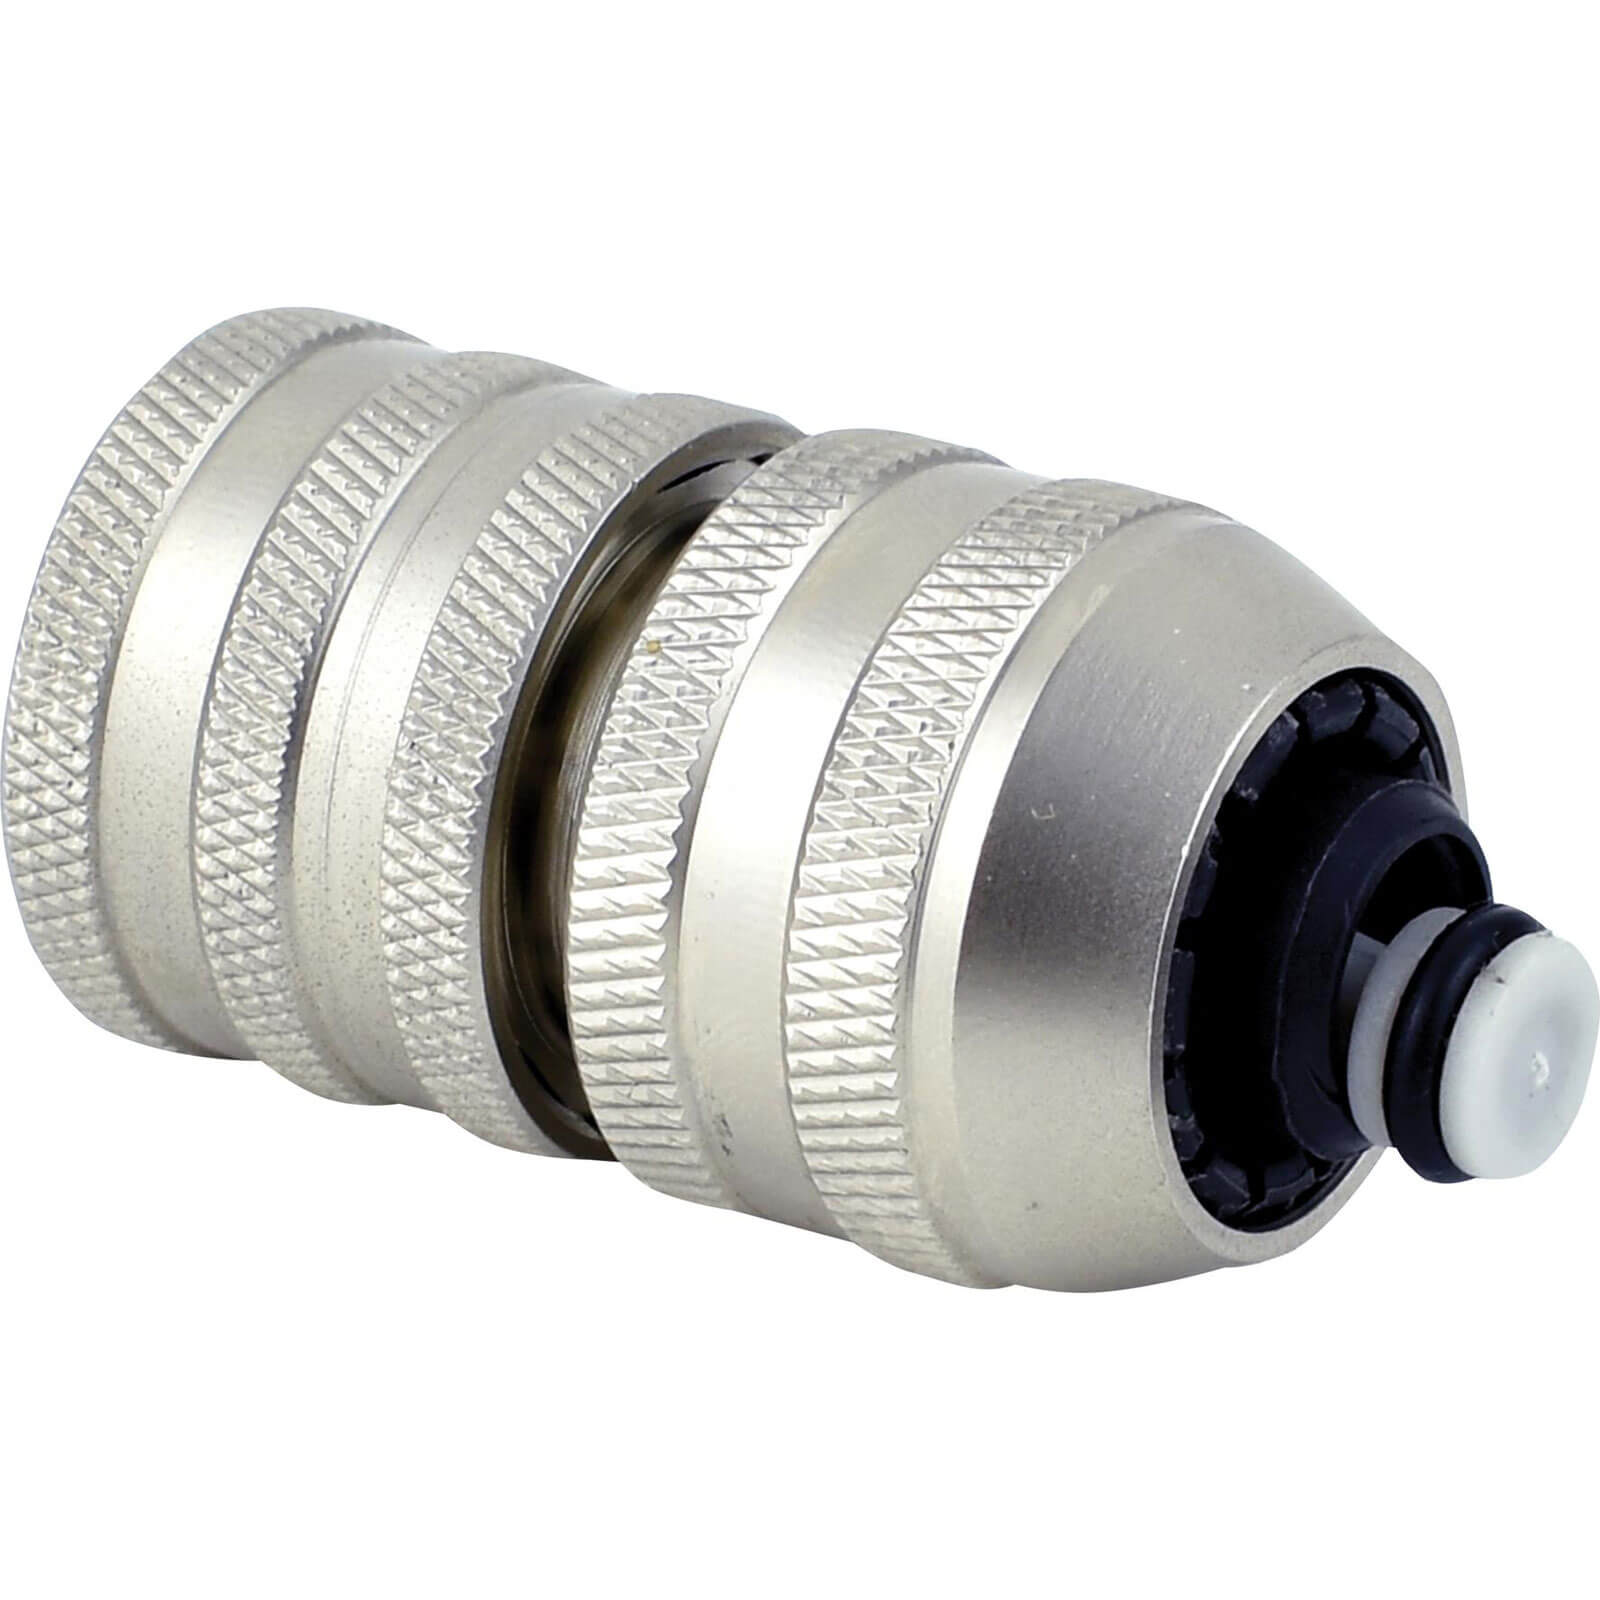 Image of Flopro Elite Water Stop Hose Pipe Connector